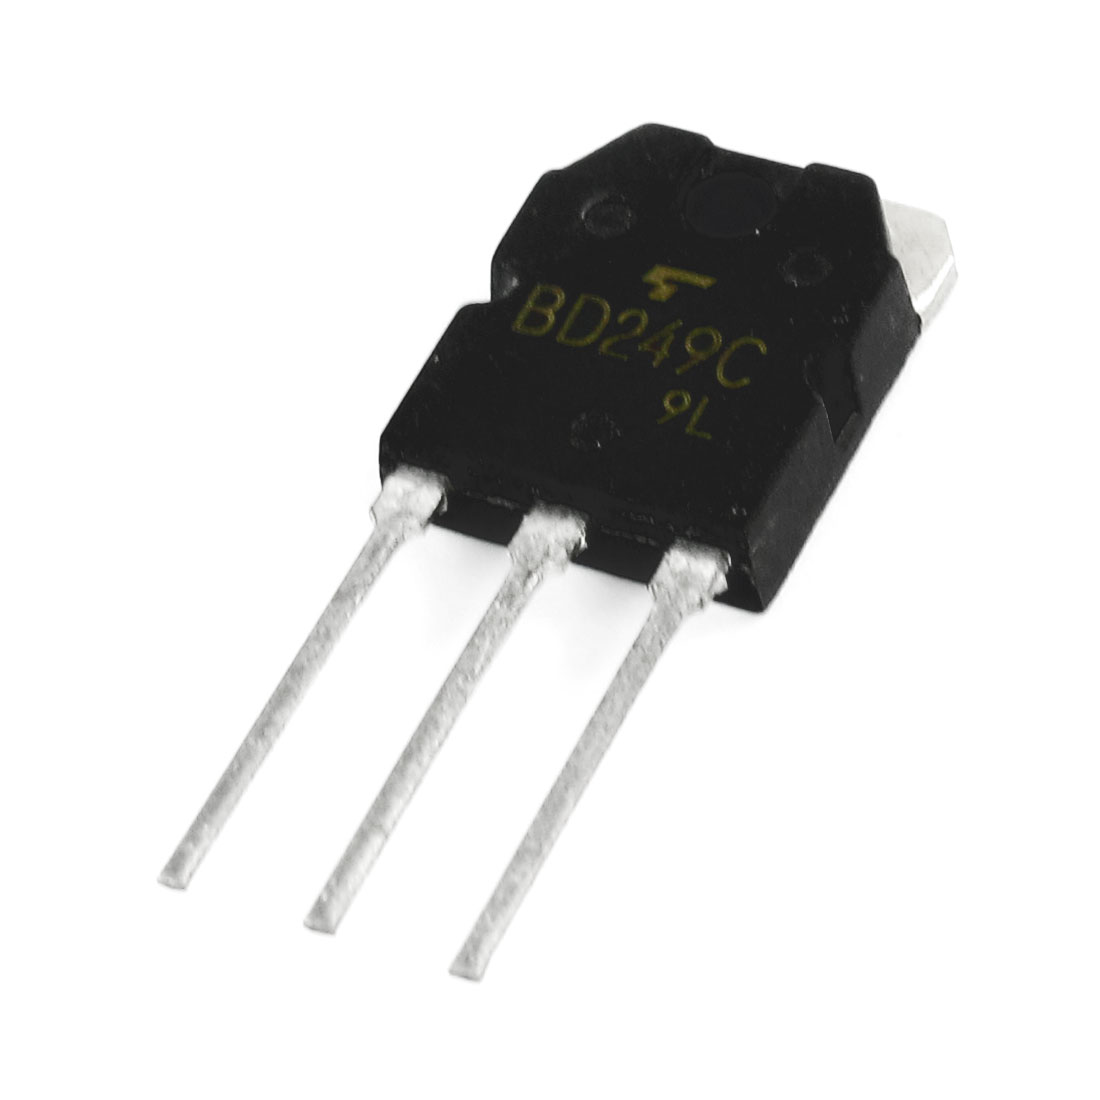 BD249C 100V 25Amp 125W High Switching Speed Silicon NPN Power Transistor